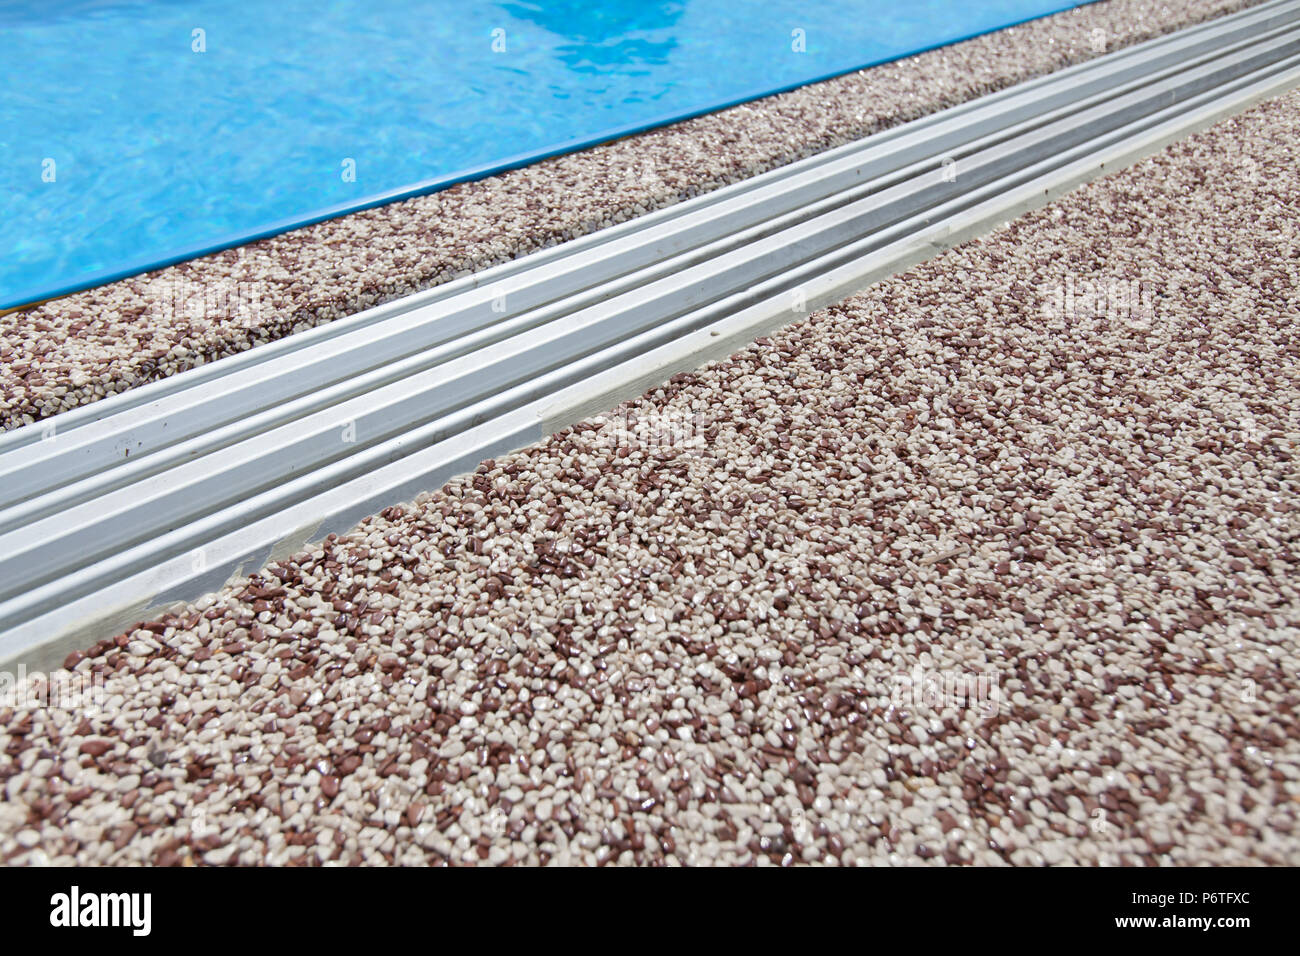 Texture of pebbles in an exposed aggregate foundation - Stock Image & Exposed Aggregate Patio Stock Photos u0026 Exposed Aggregate Patio Stock ...